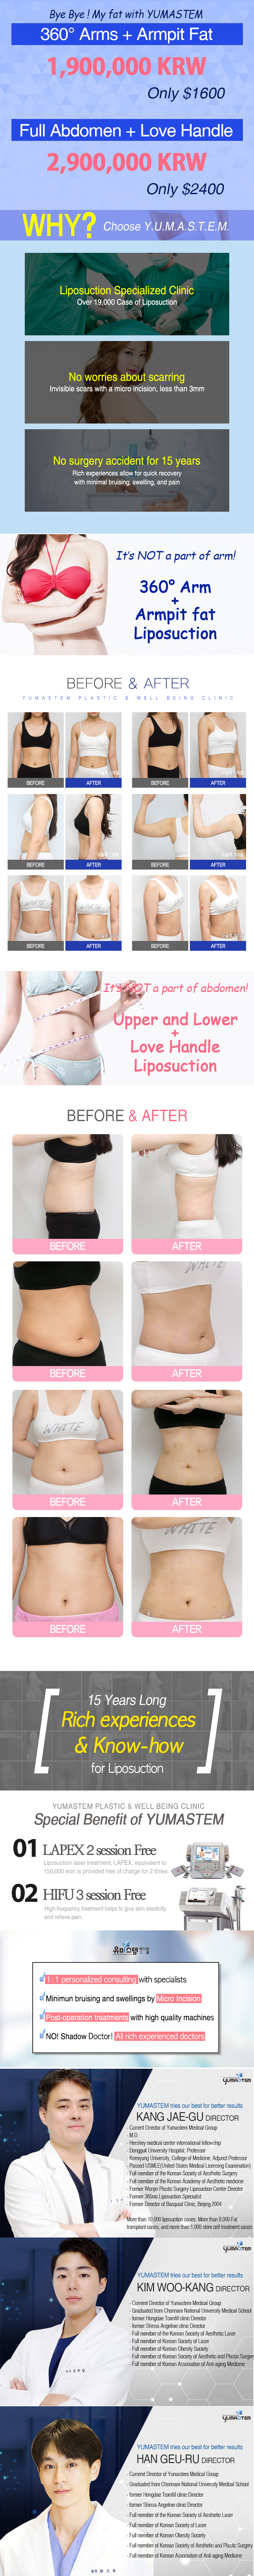 Why you should choose YUMASTEM liposuction? specialist of liposuction over 19000 cases and safe surgery with know-how. before and after photos of arm & stomach liposuction